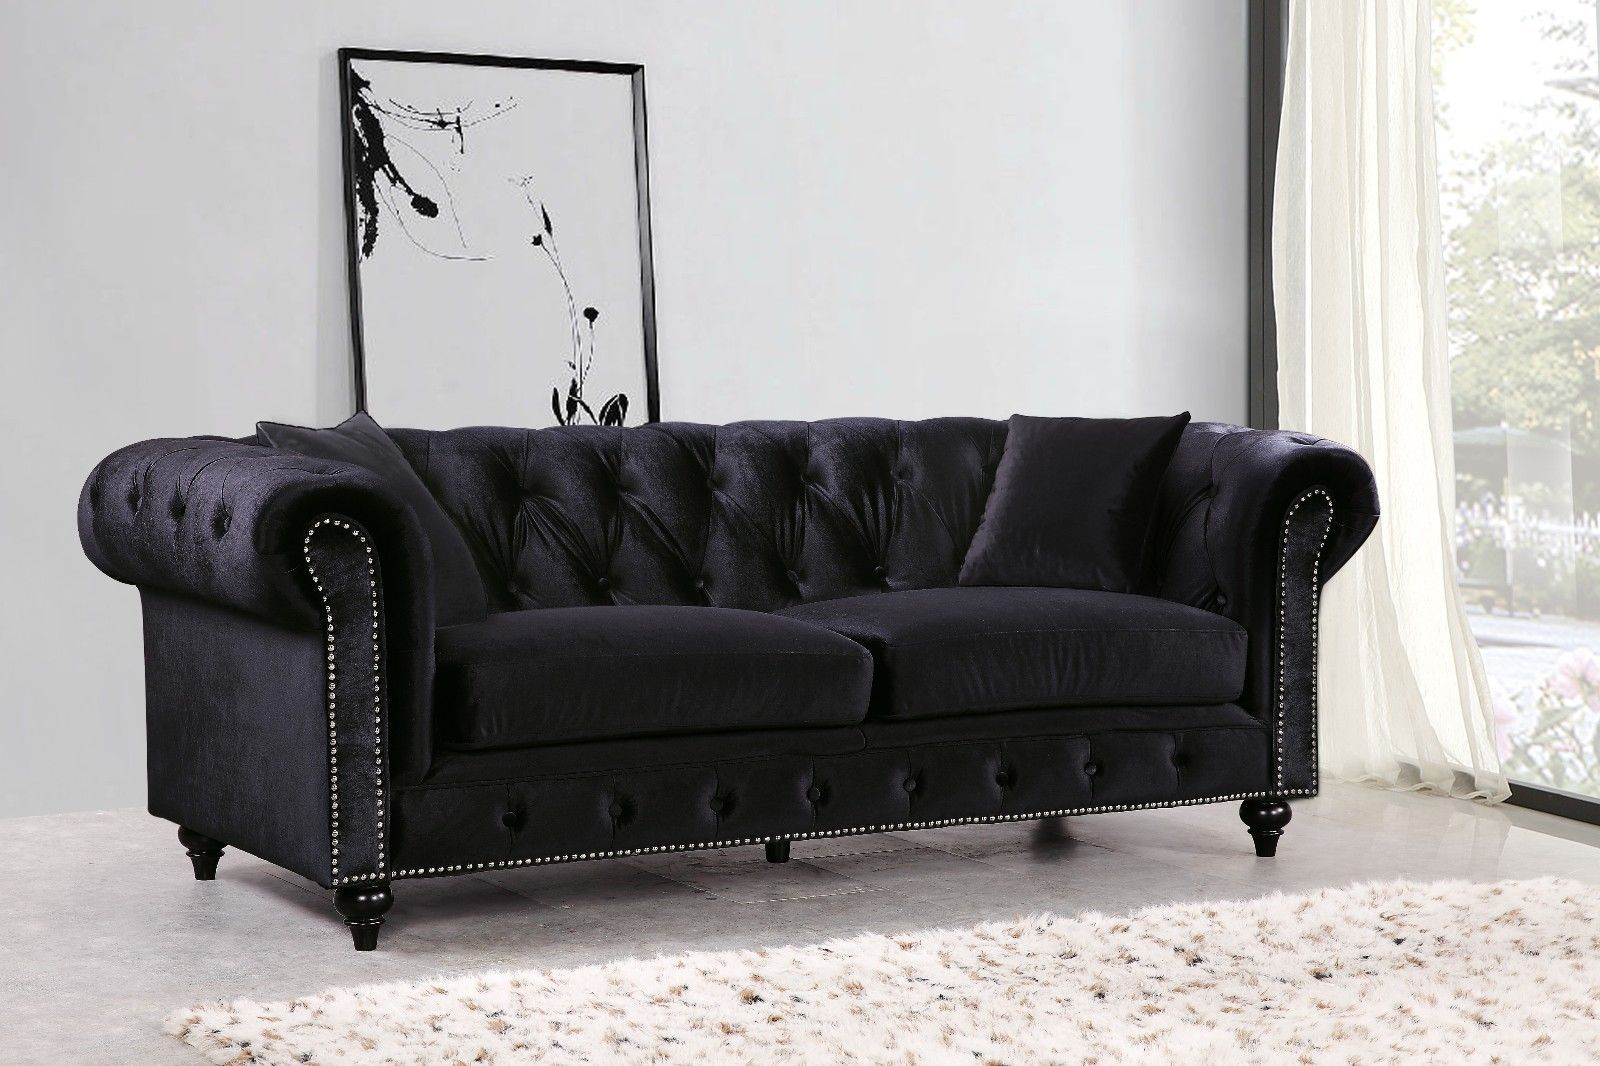 Meridian 662 Velvet Living Room Sofa Tufted Black Traditional Style